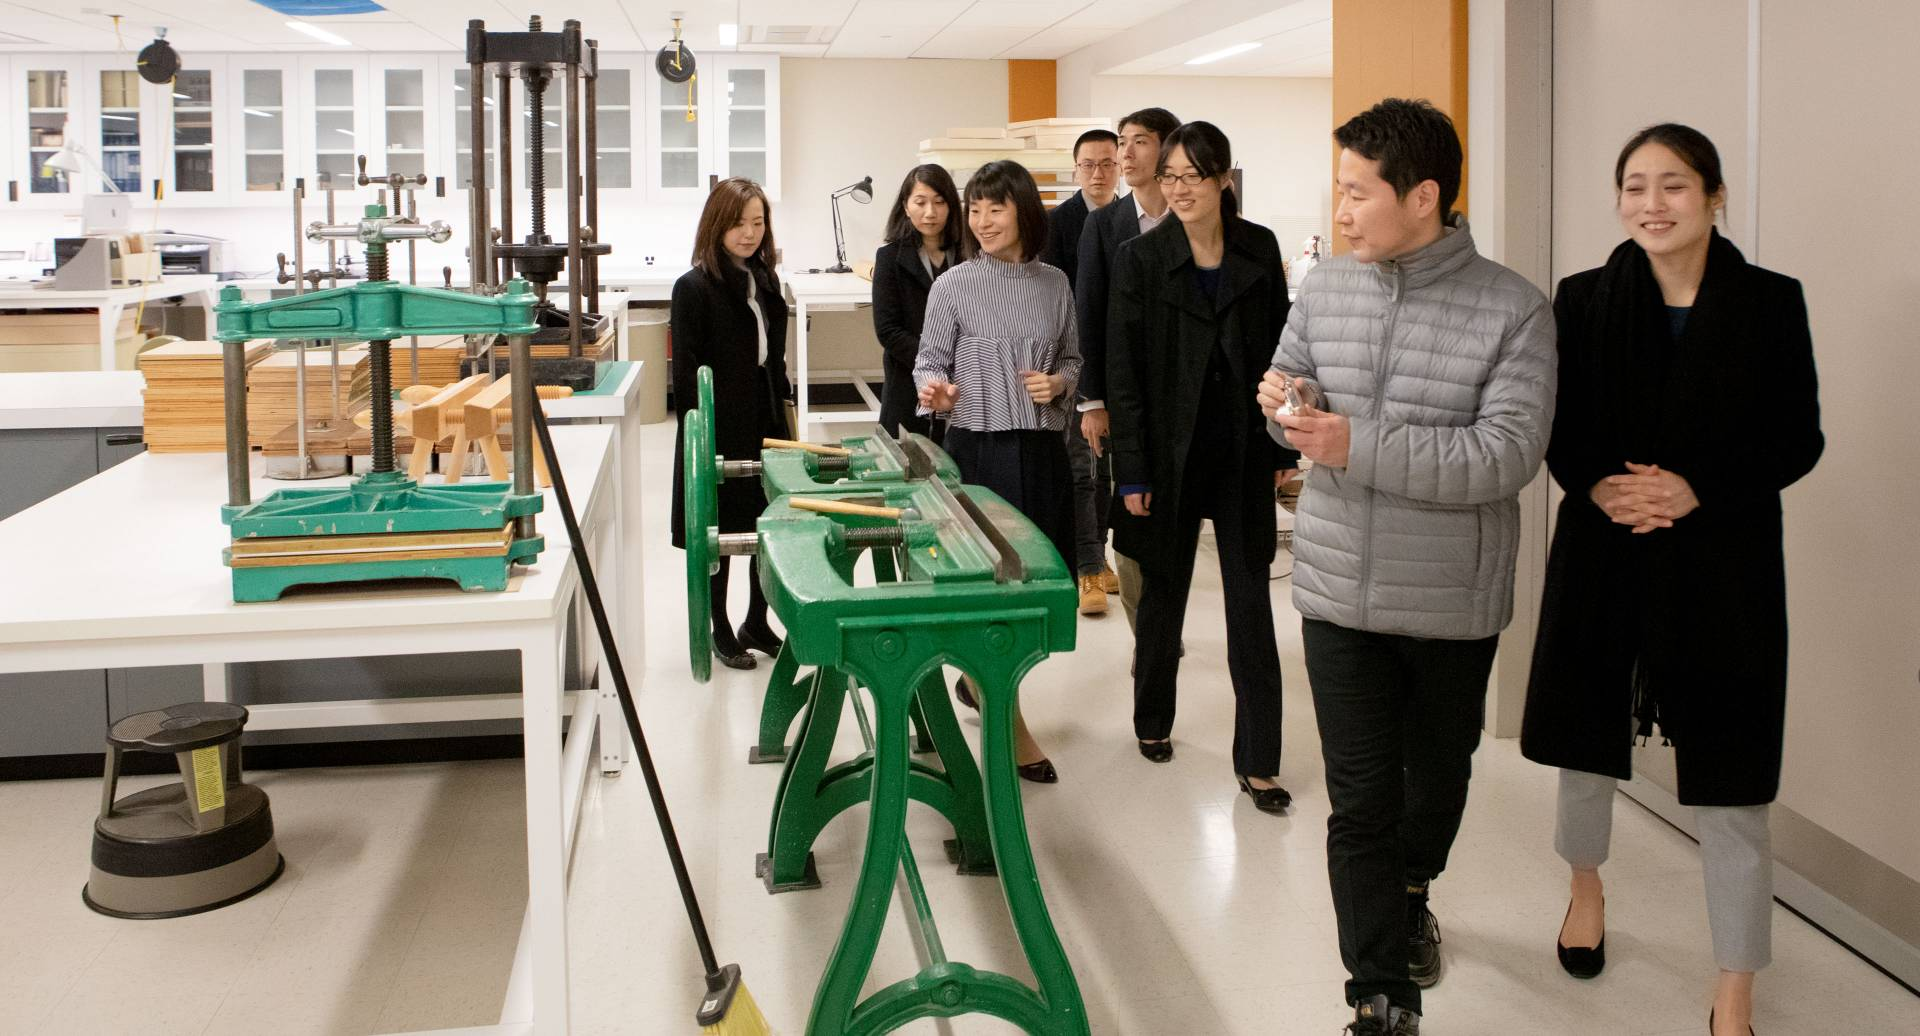 University of Tokyo delegates looking at machines in library